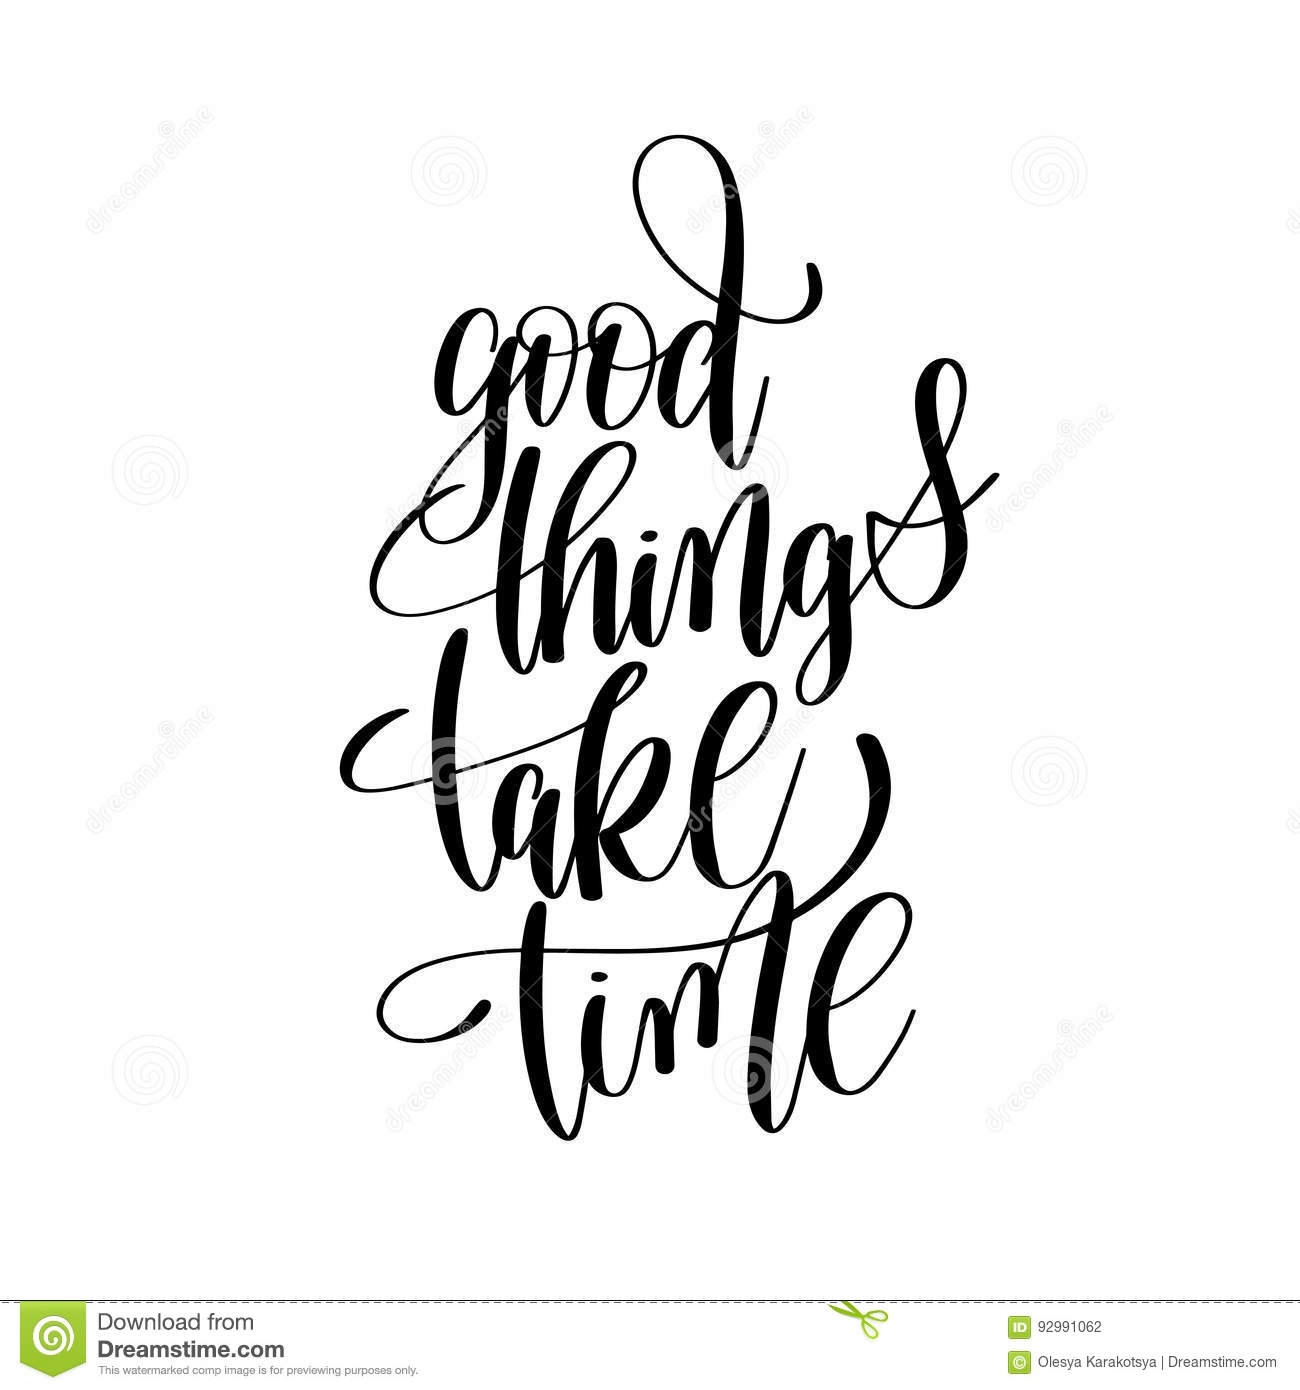 75+ Good Things Take Time Quote